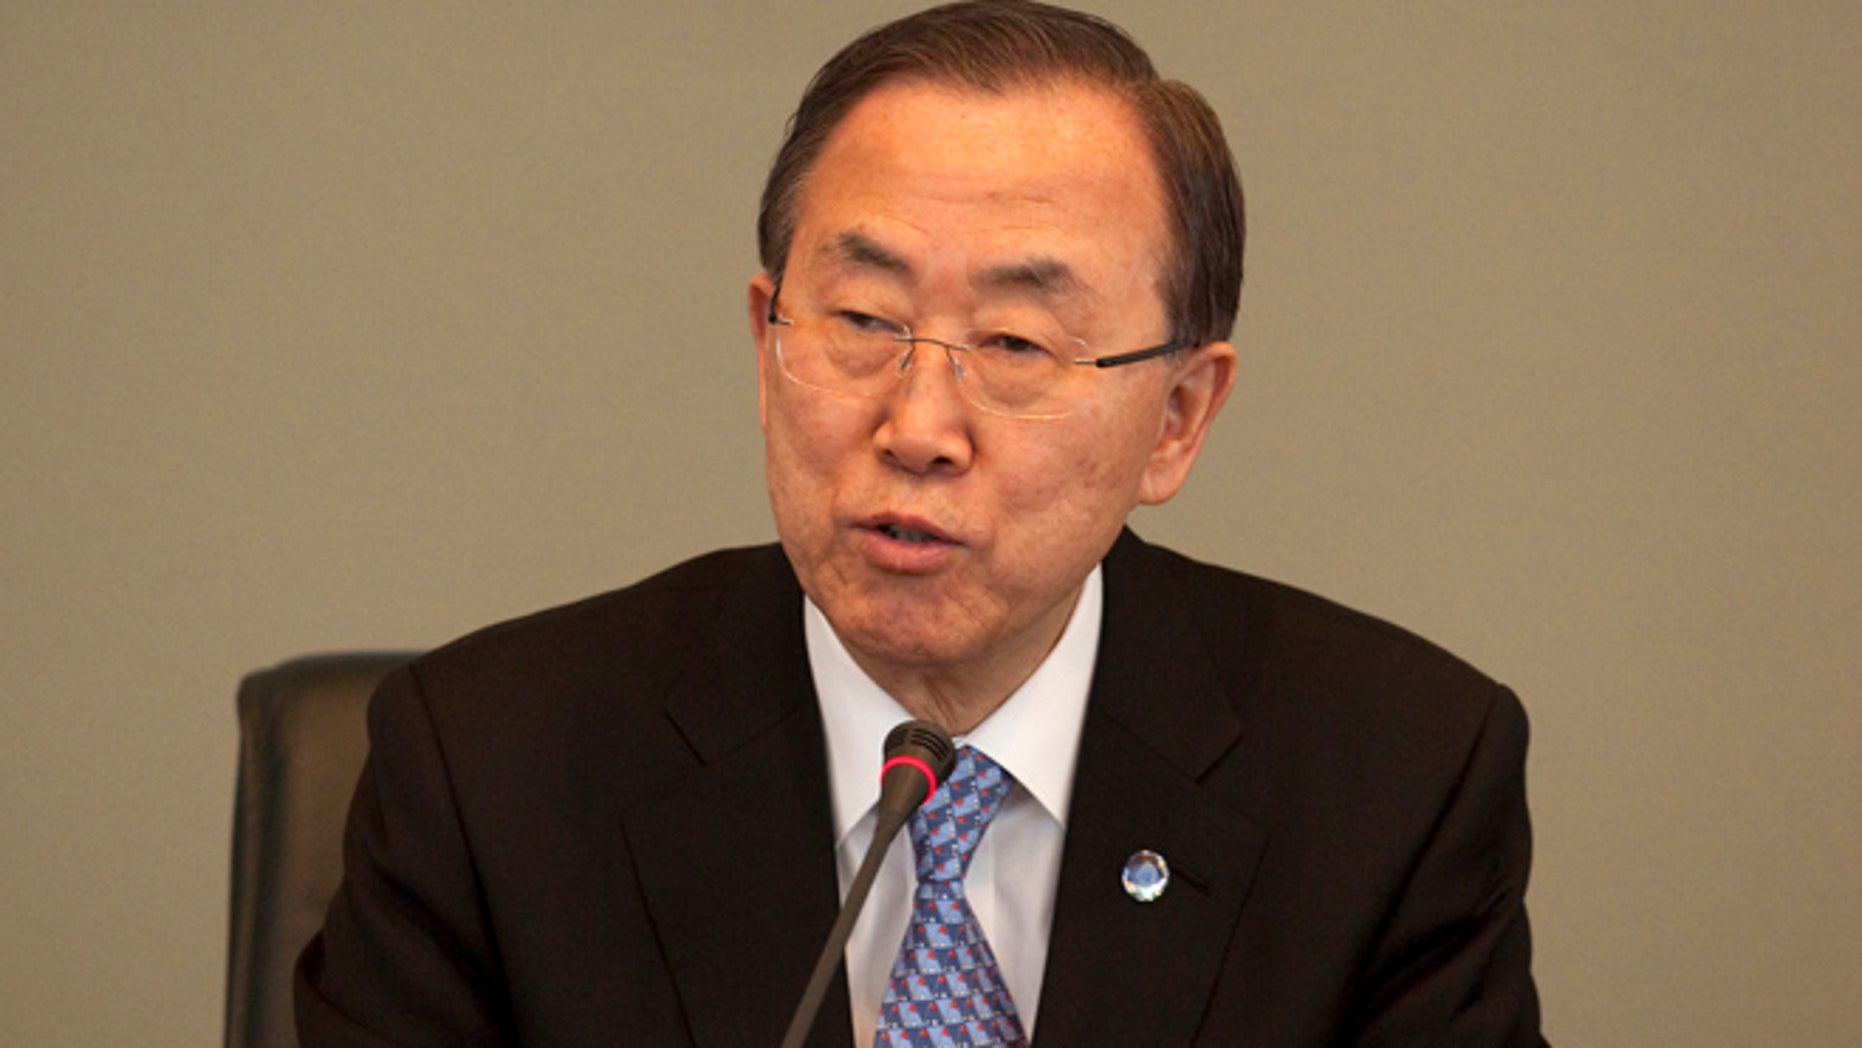 April 8, 2013: U.N. Secretary-General Ban Ki-moon, left, speaks at the headquarters of the Organization for the Prohibition of Chemical Weapons (OPCW) in The Hague, Netherlands.  Ban Ki-moon says inspectors are ready to deploy to Syria within 24 hours to investigate reported chemical weapon attacks in the country's two-year civil war but have no permission yet from President Bashar Assad's government.